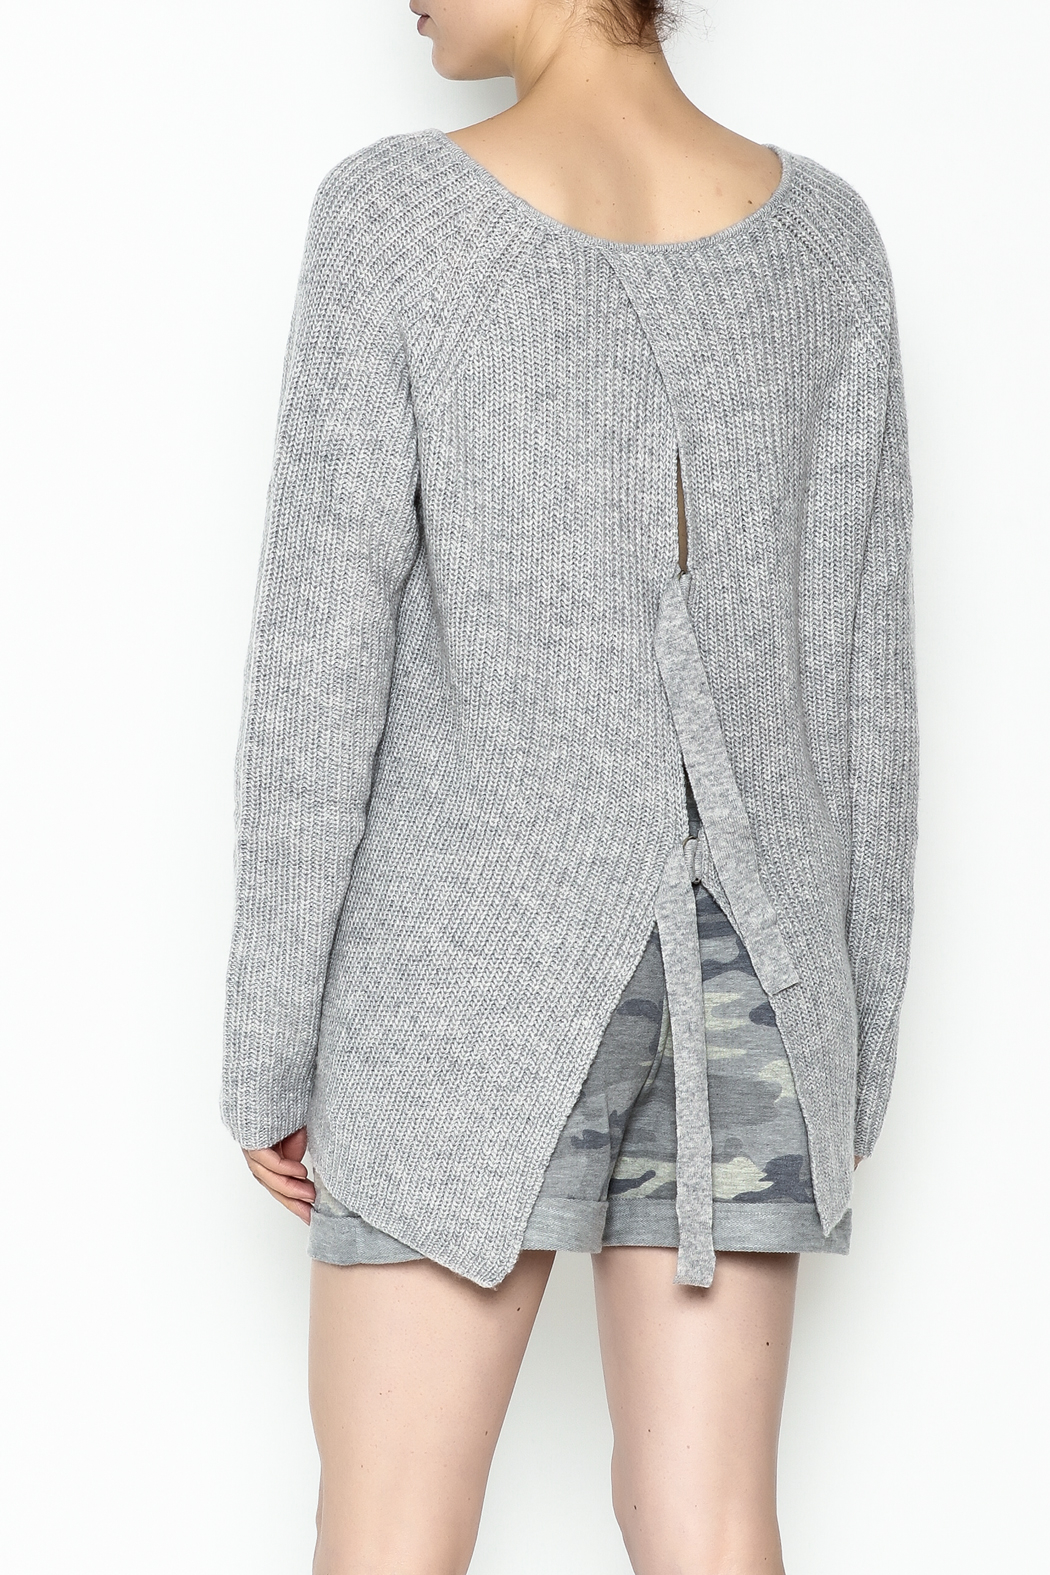 Josie Back Buckles Sweater - Back Cropped Image